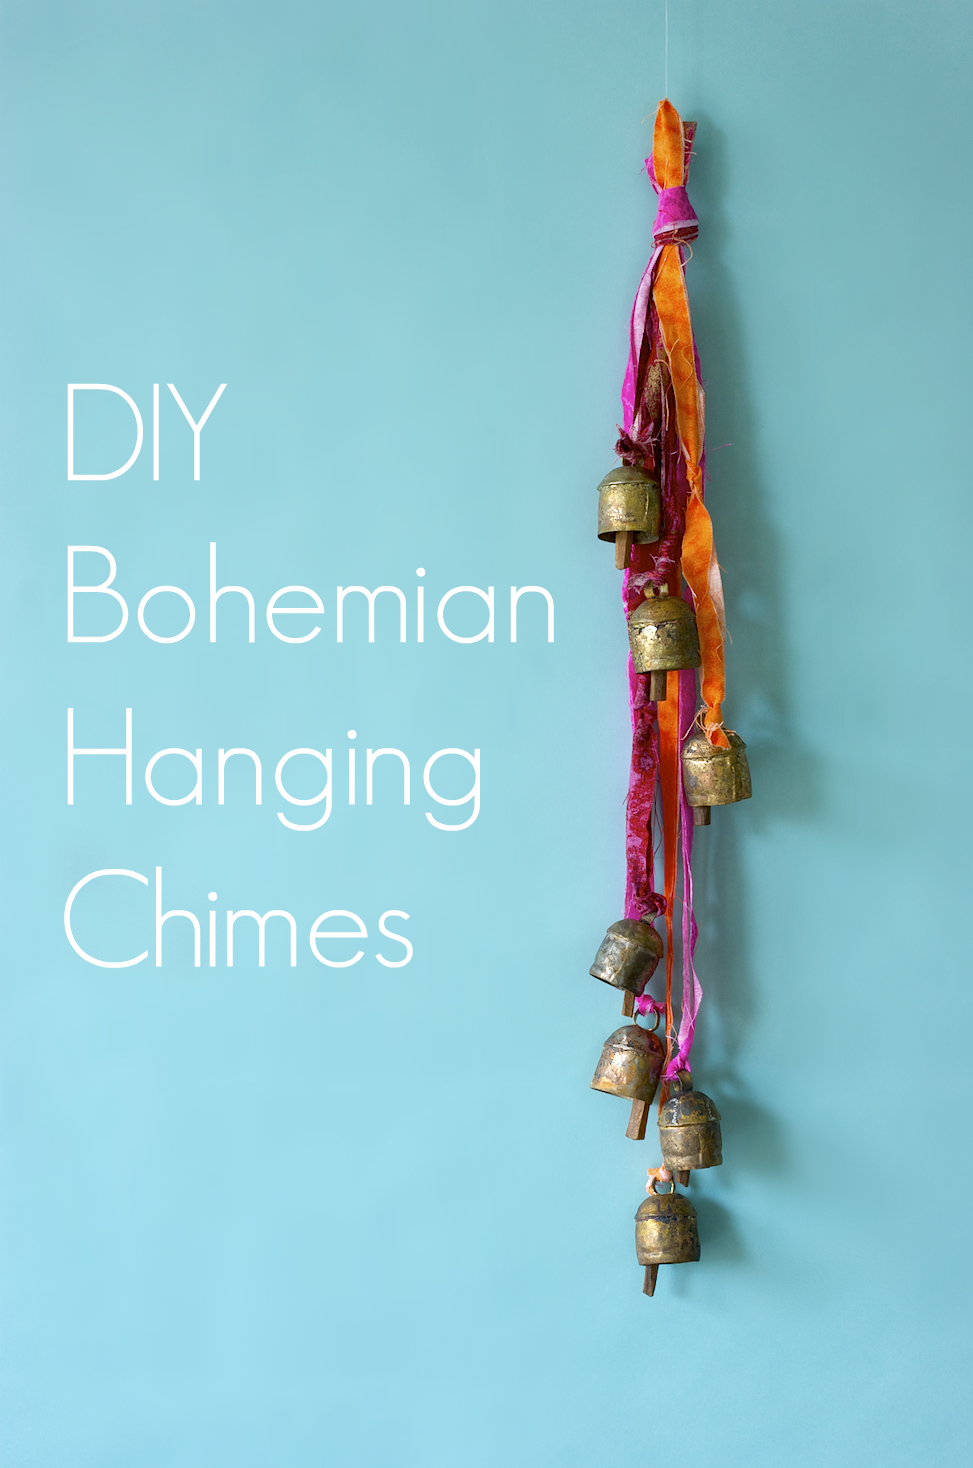 DIY Bohemian Hanging Chimes via A Charming Project